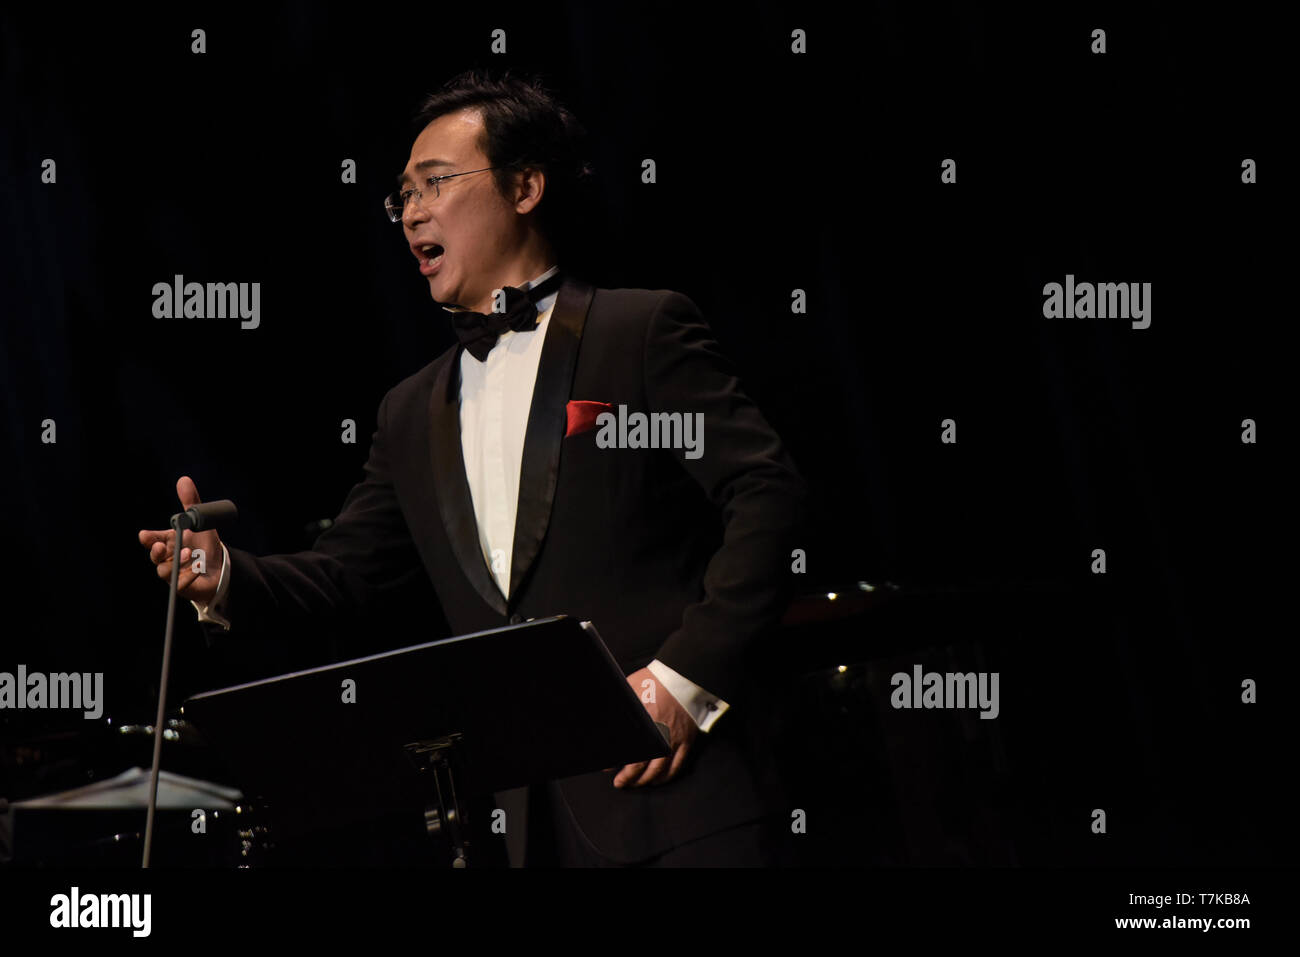 Vienna, Austria  7th May, 2019  Liao Changyong, a famous baritone